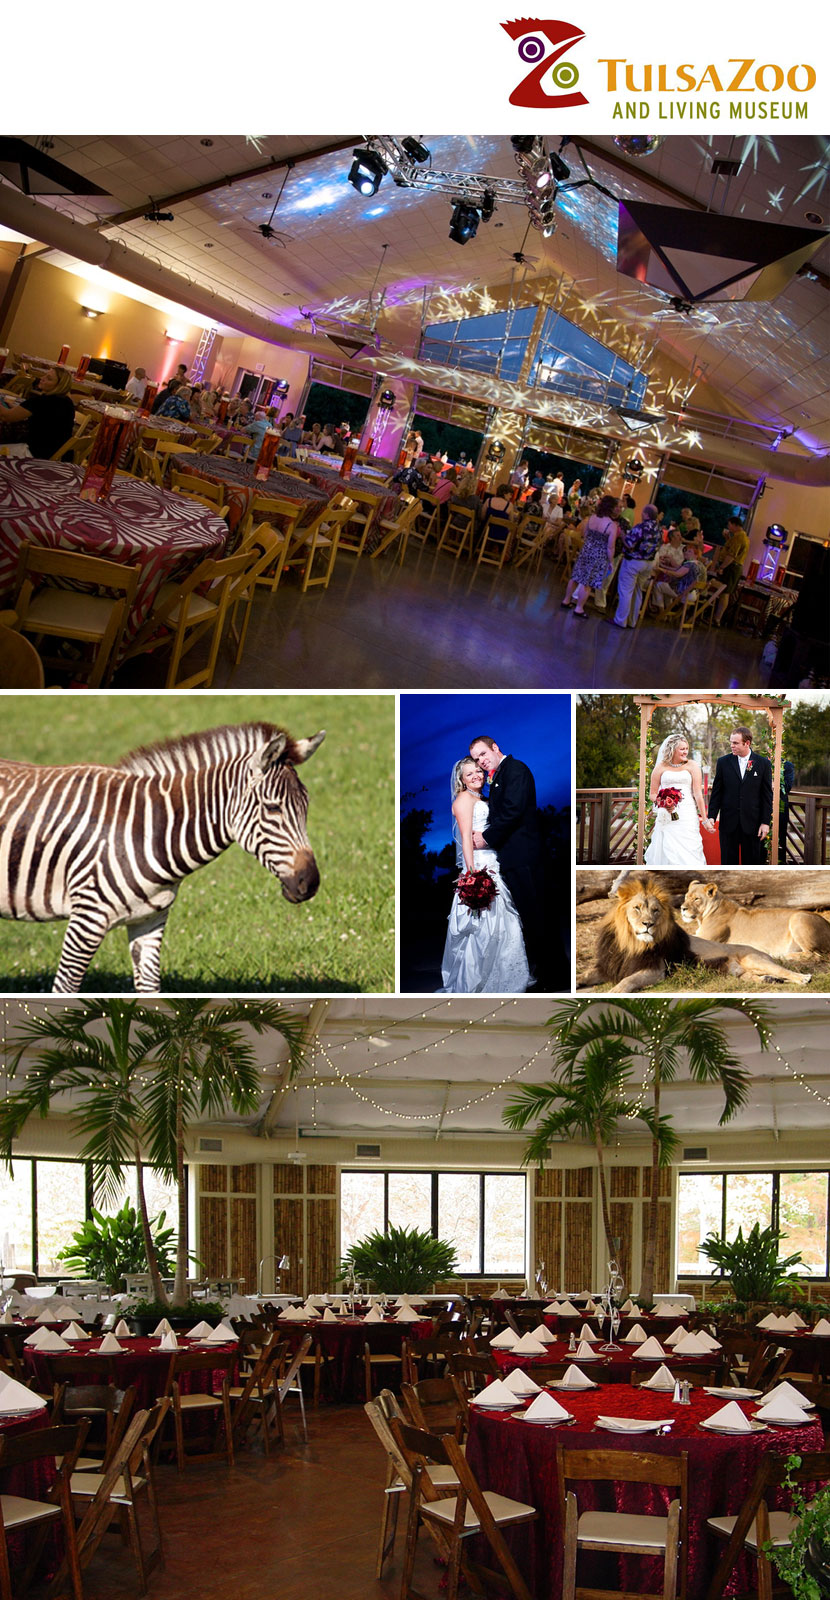 Looking For An Exotic Location Your Wedding Or Reception The Tulsa Zoo Living Museum Offers Both Beautiful Garden Settings As Well Indoor